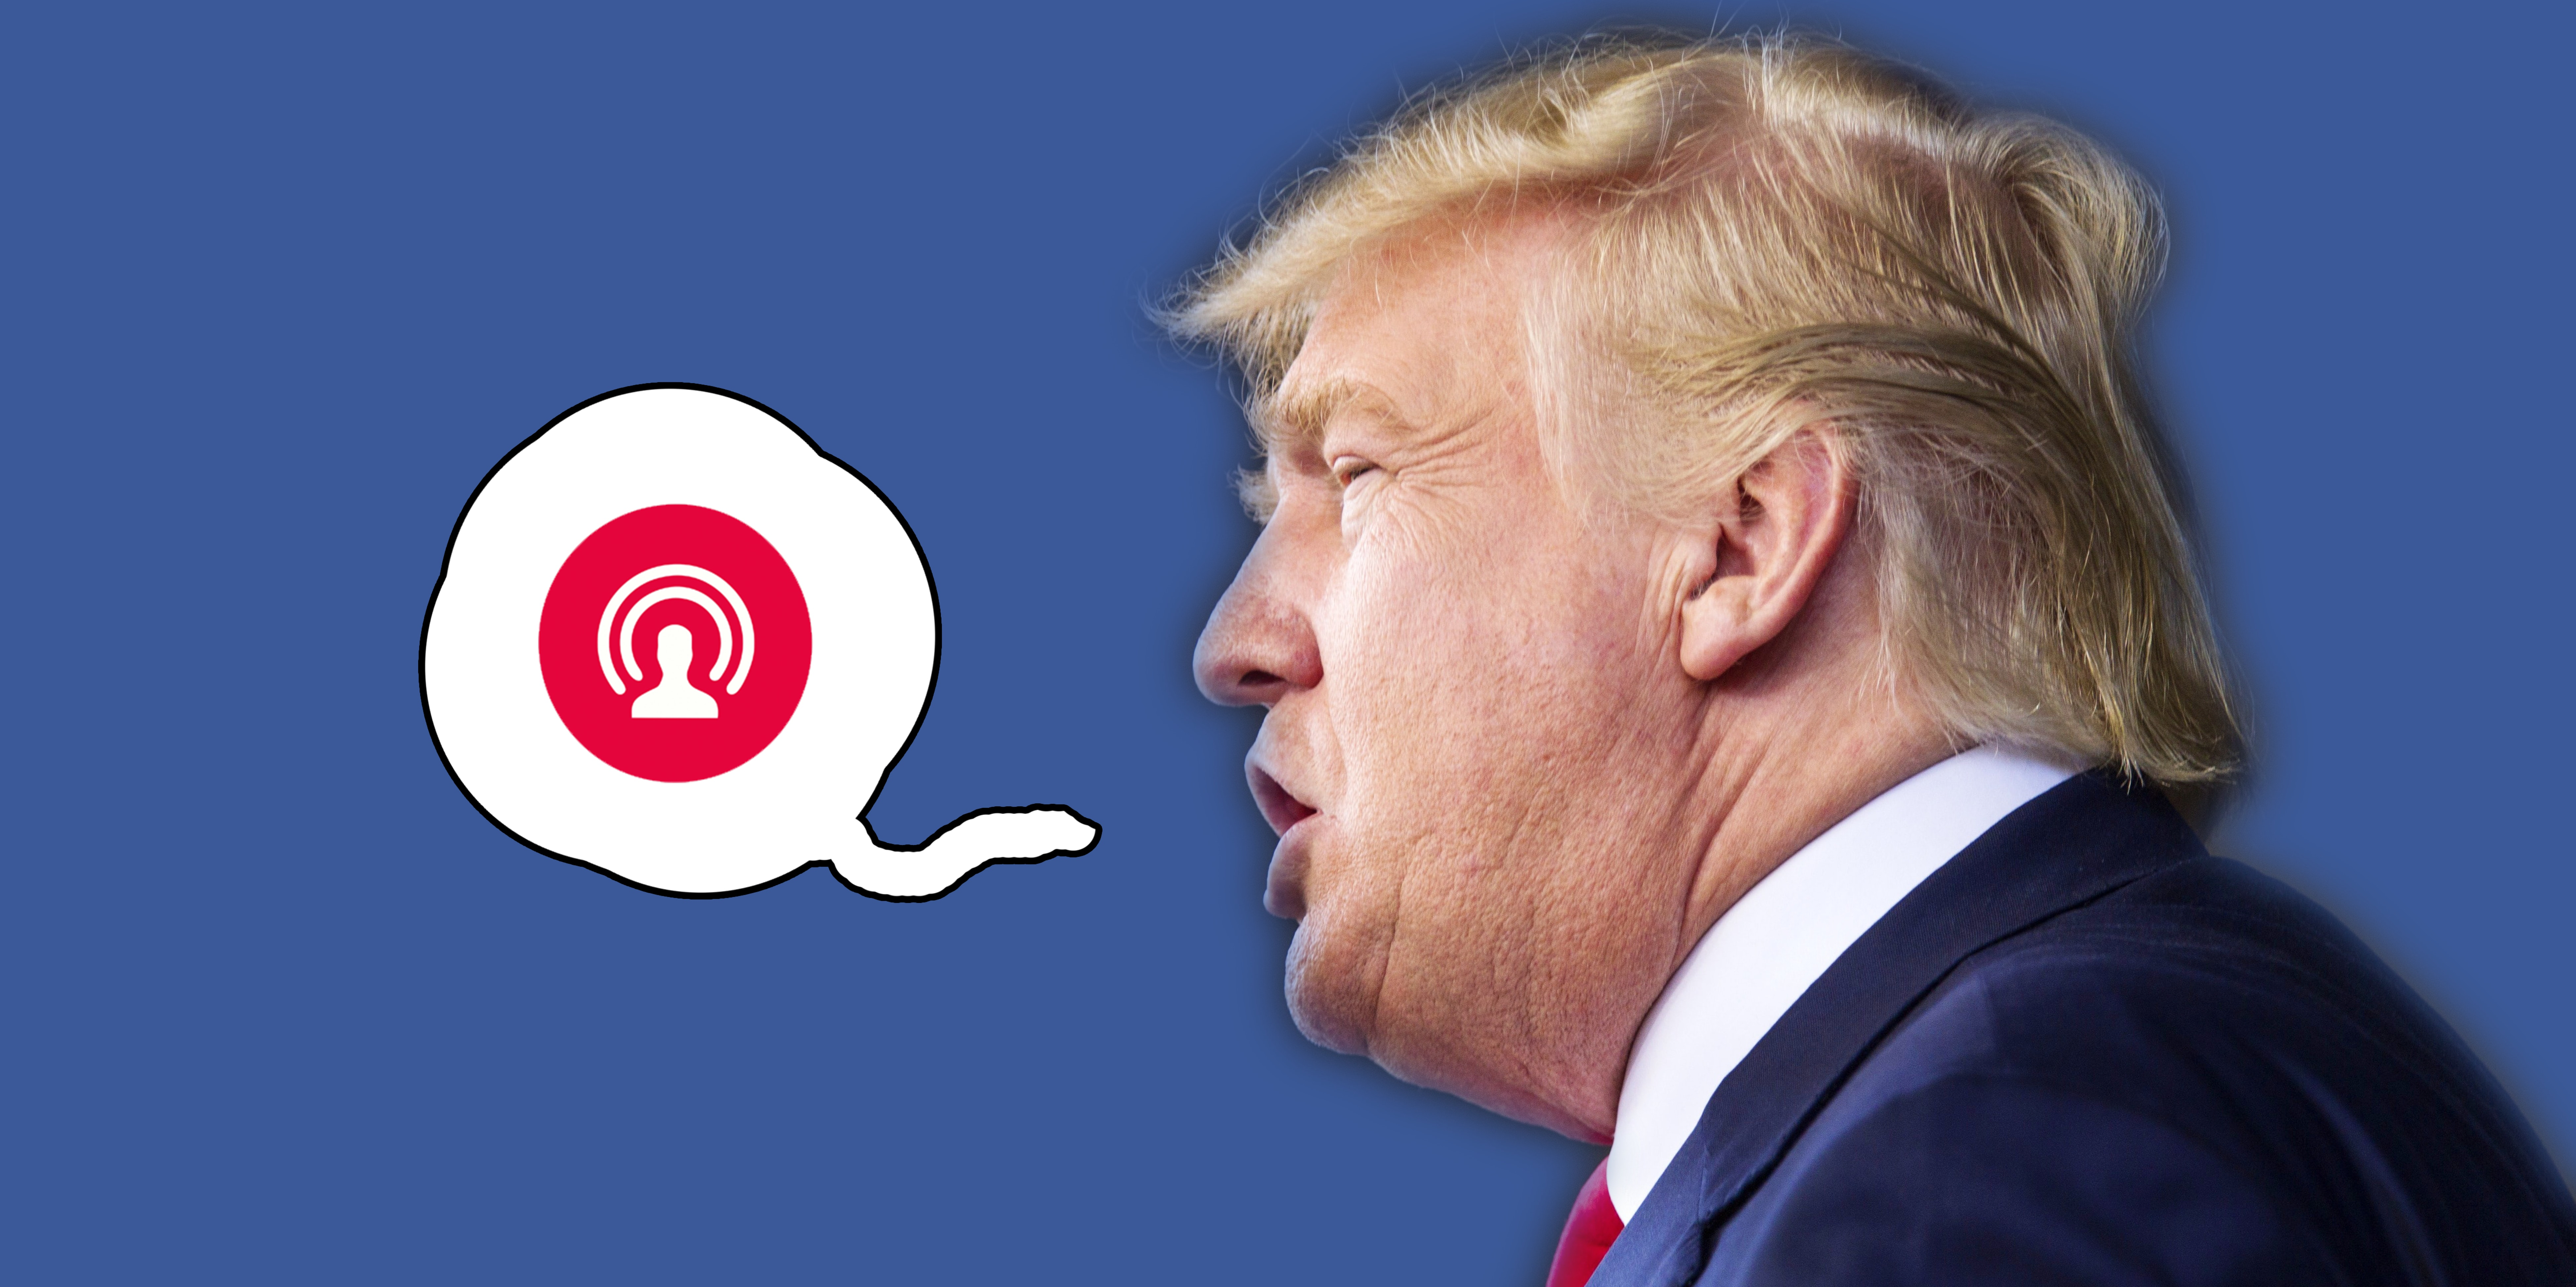 Donald Trump will broadcast nightly on Facebook Live.